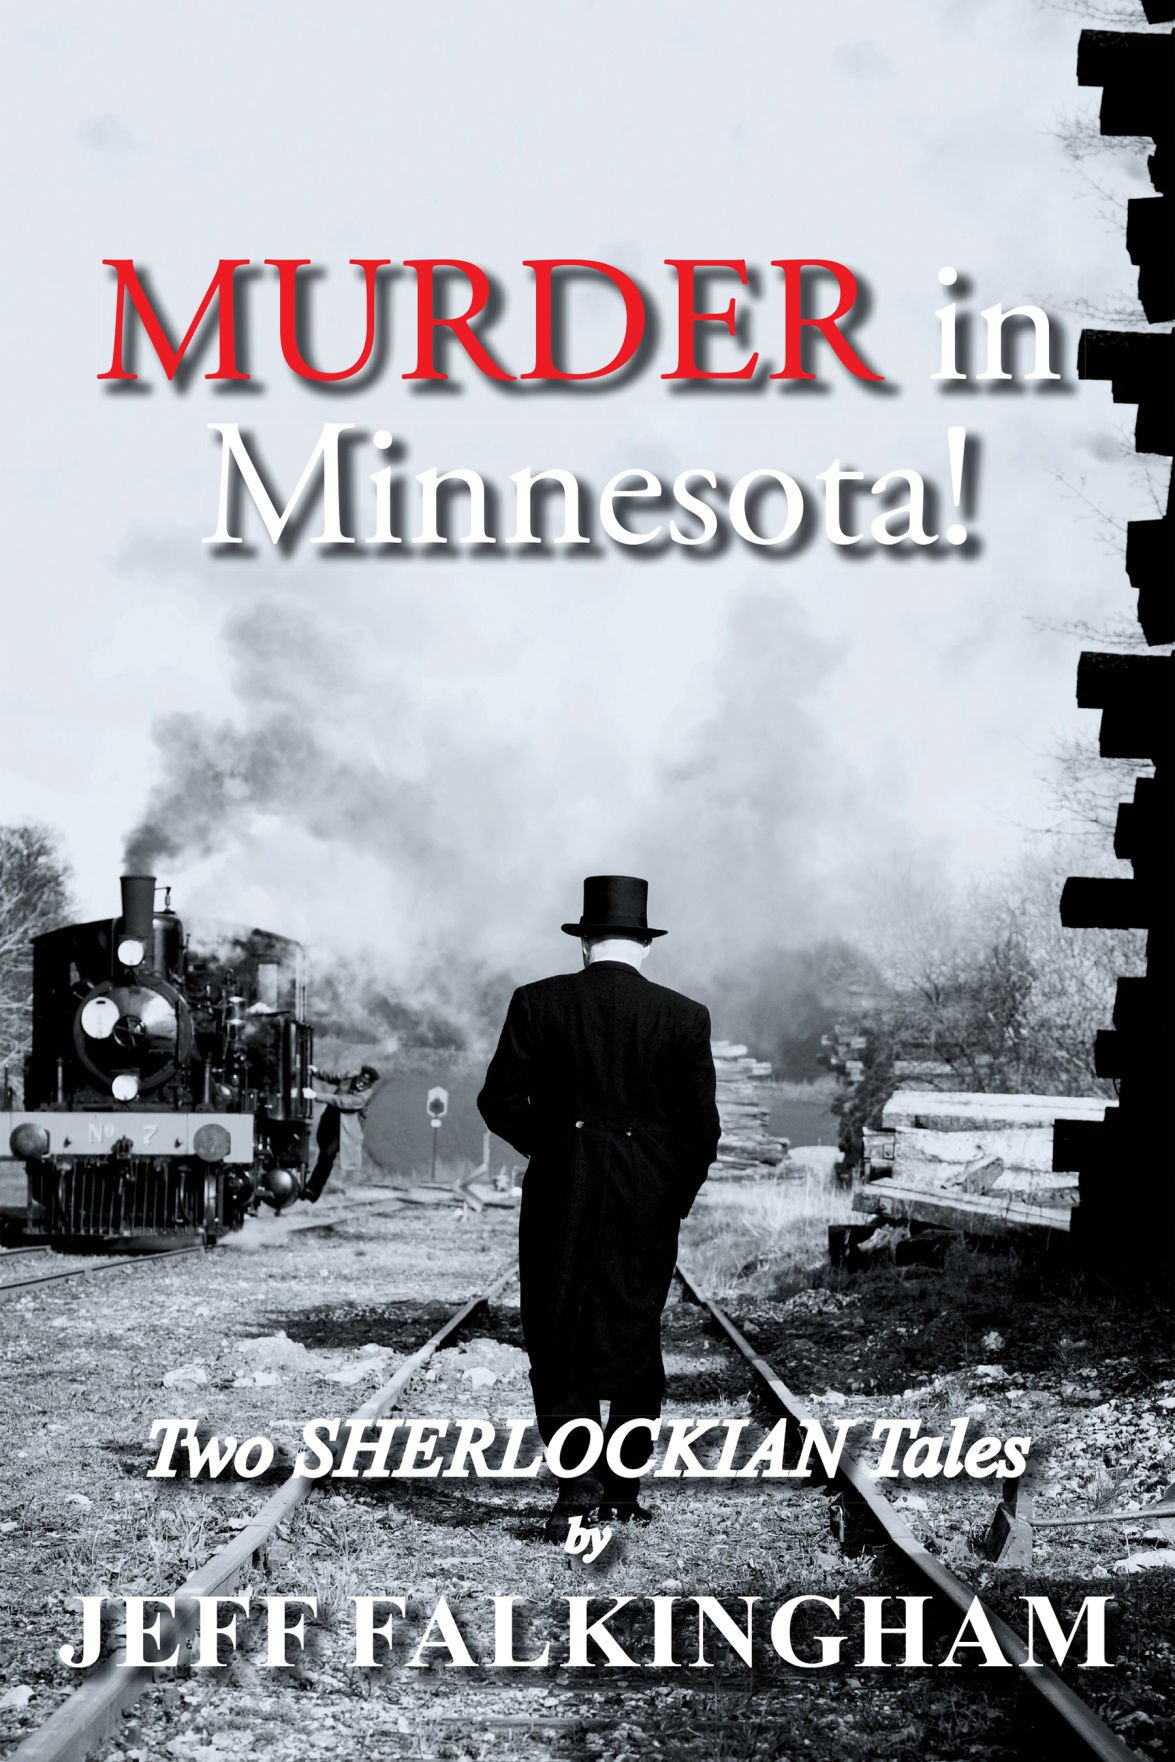 Two Sherlock Holmes books in one - Murder in Minnesota!